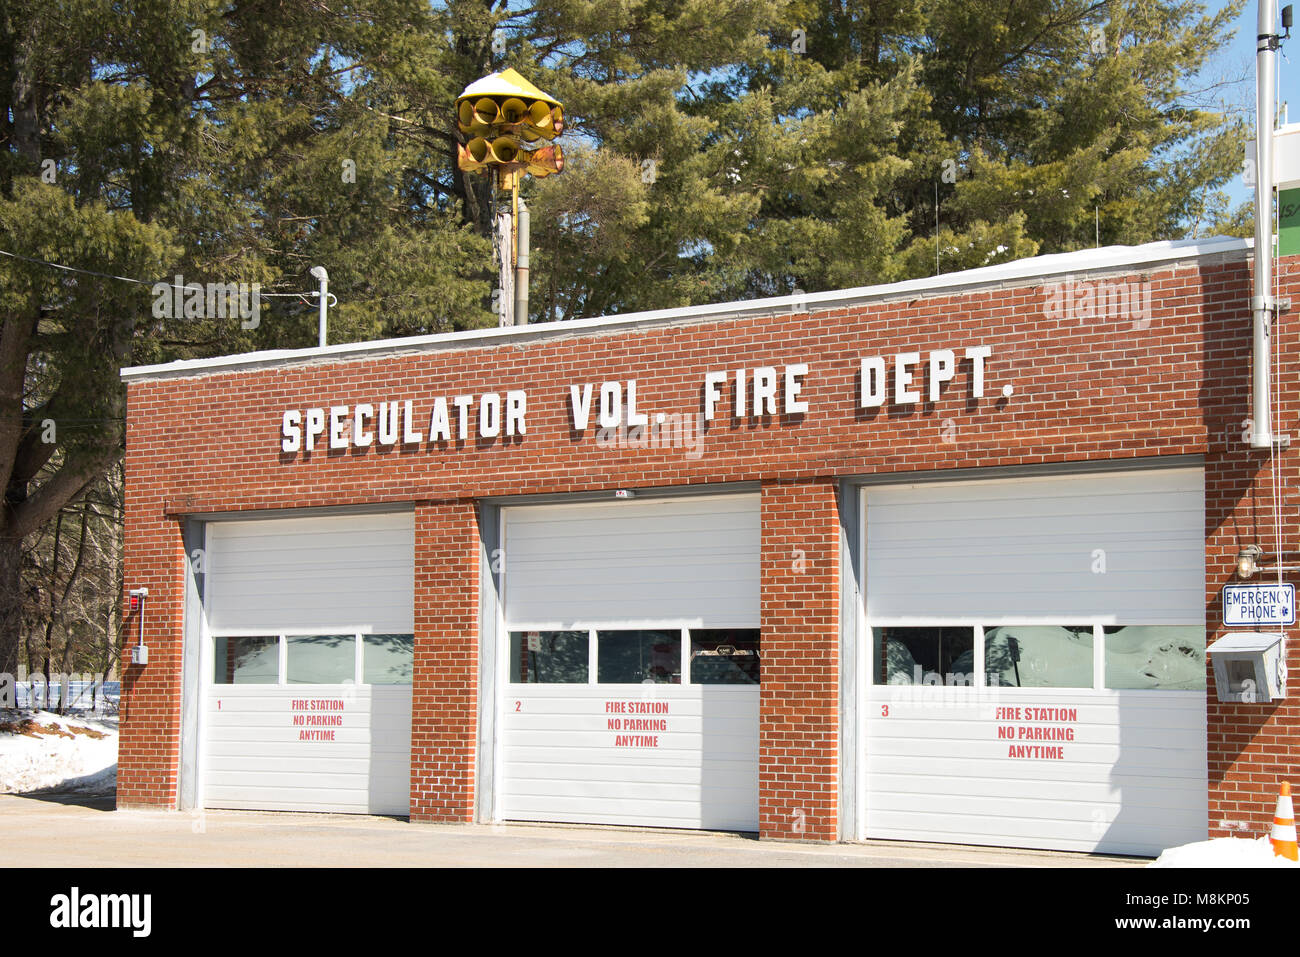 Speculator Volunteer Fire Department building in Speculator, NY New York USA - Stock Image